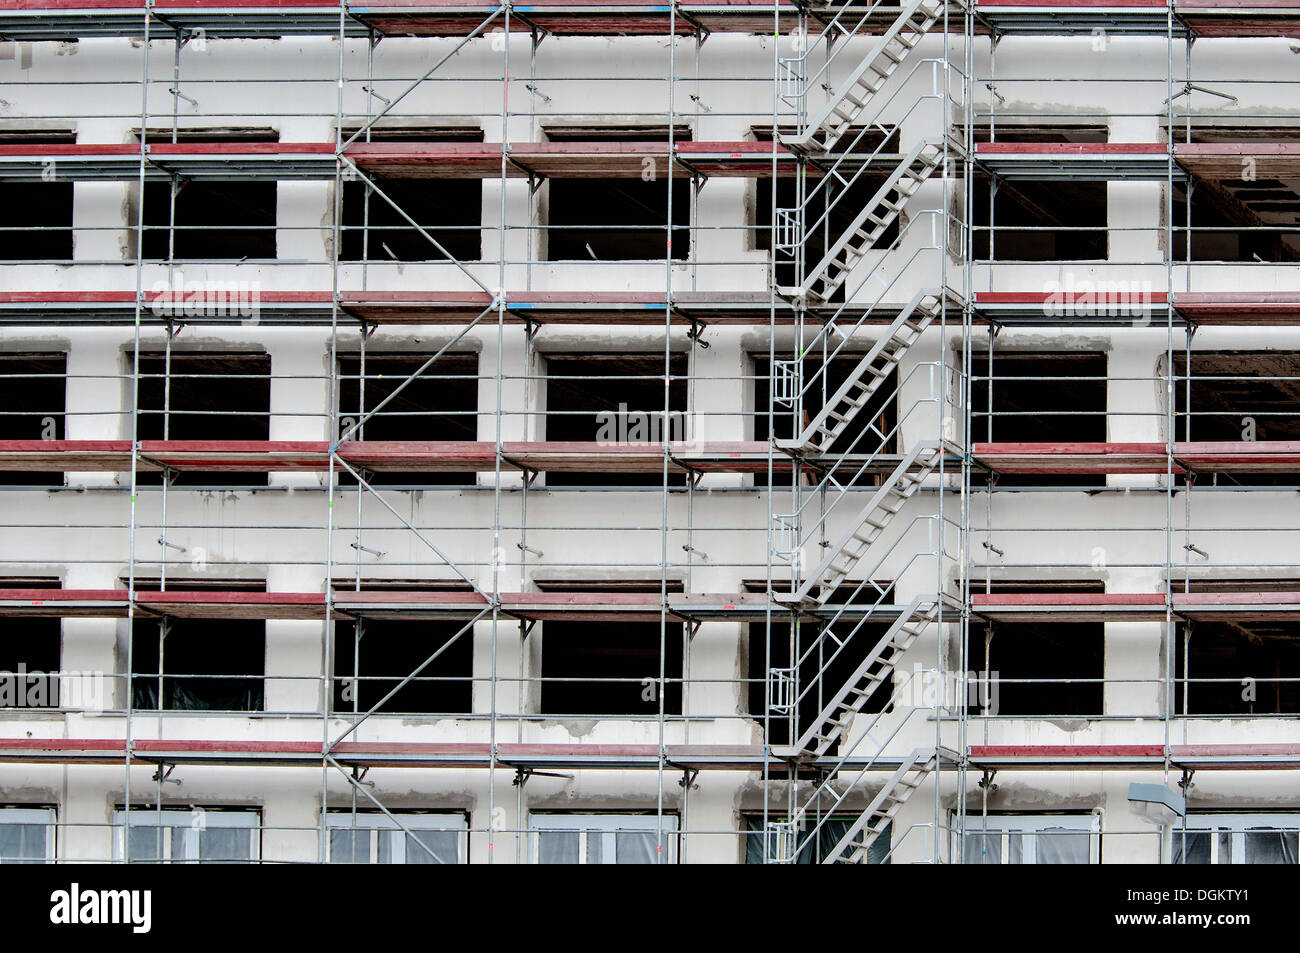 Commercial construction, scaffolded shell with stairs, Bonn, North Rhine-Westphalia, PublicGround - Stock Image